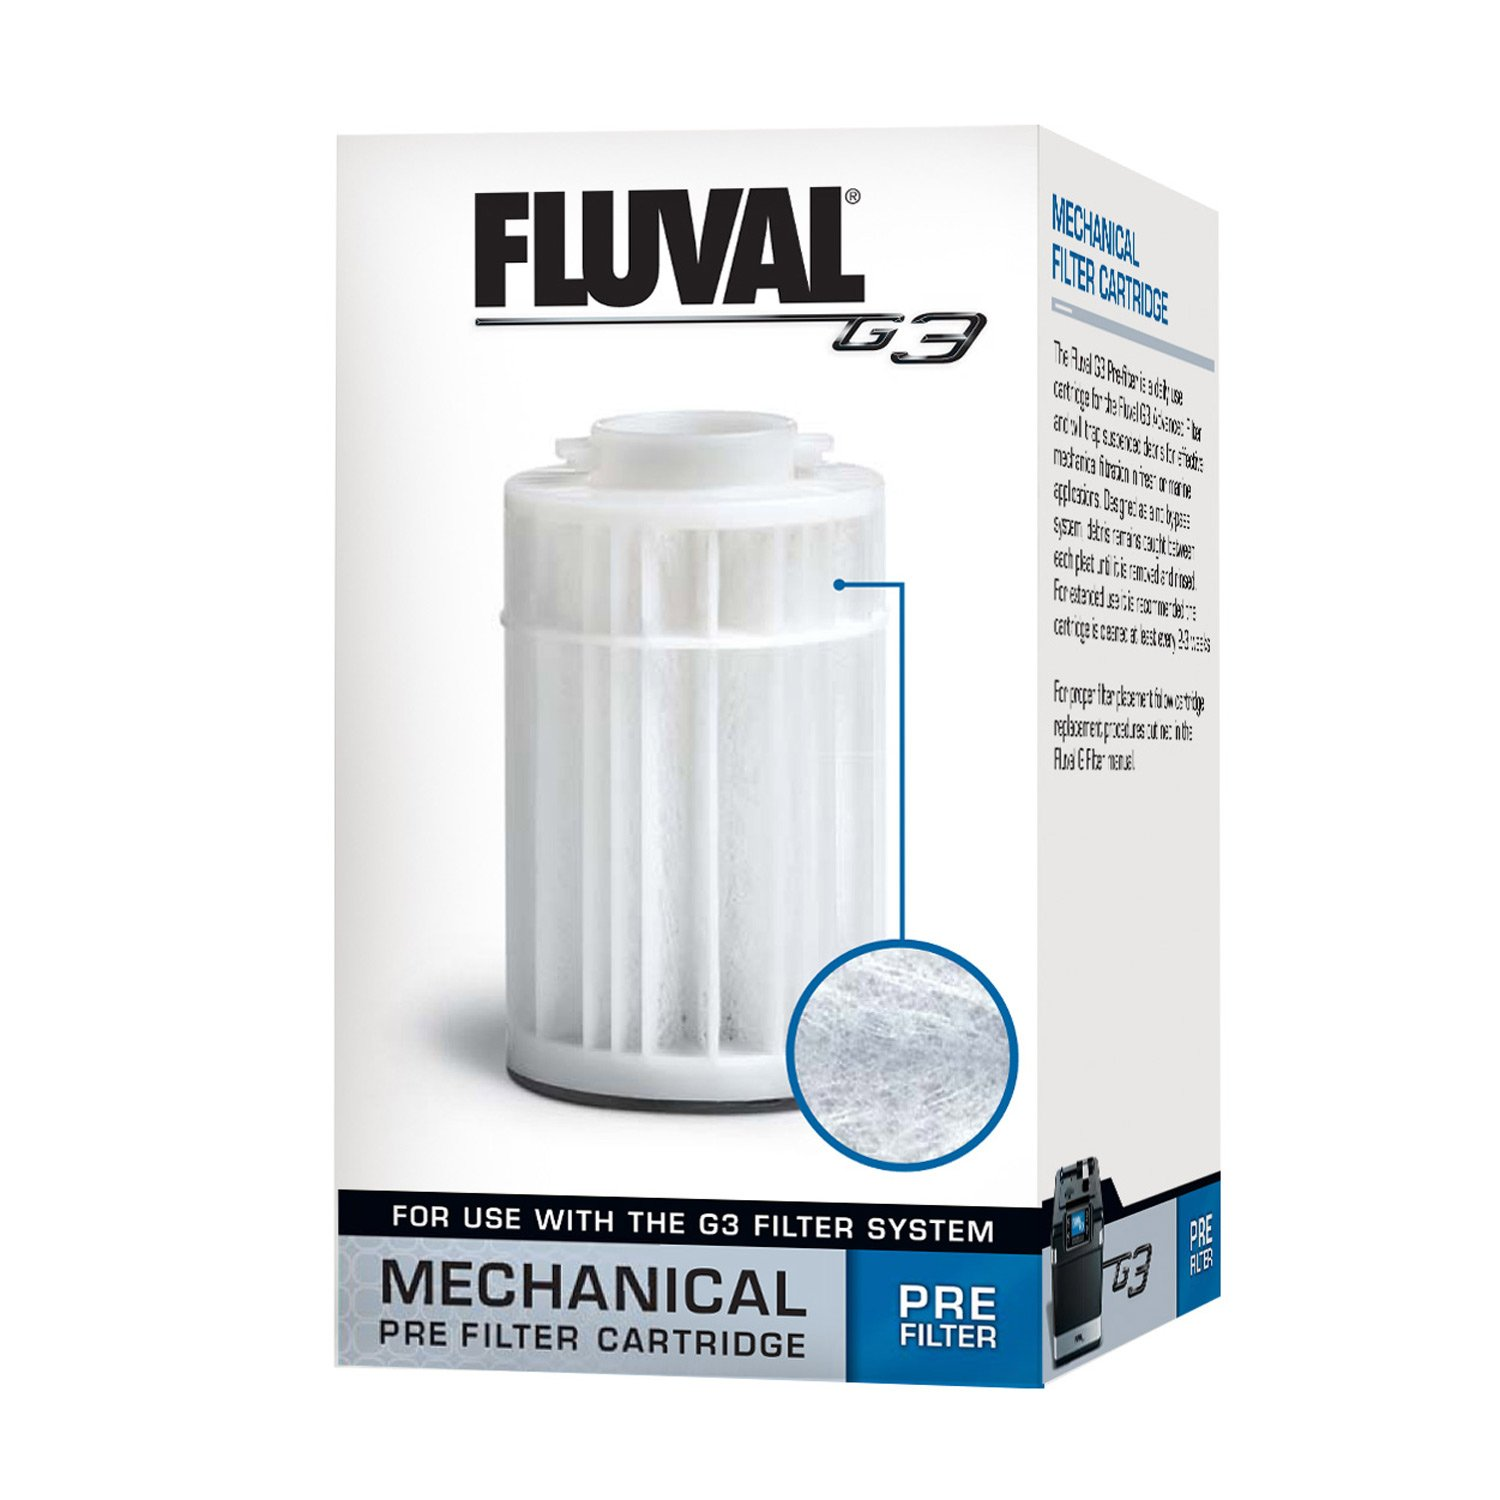 Fluval G3 Pre Filter Cartridge Petco